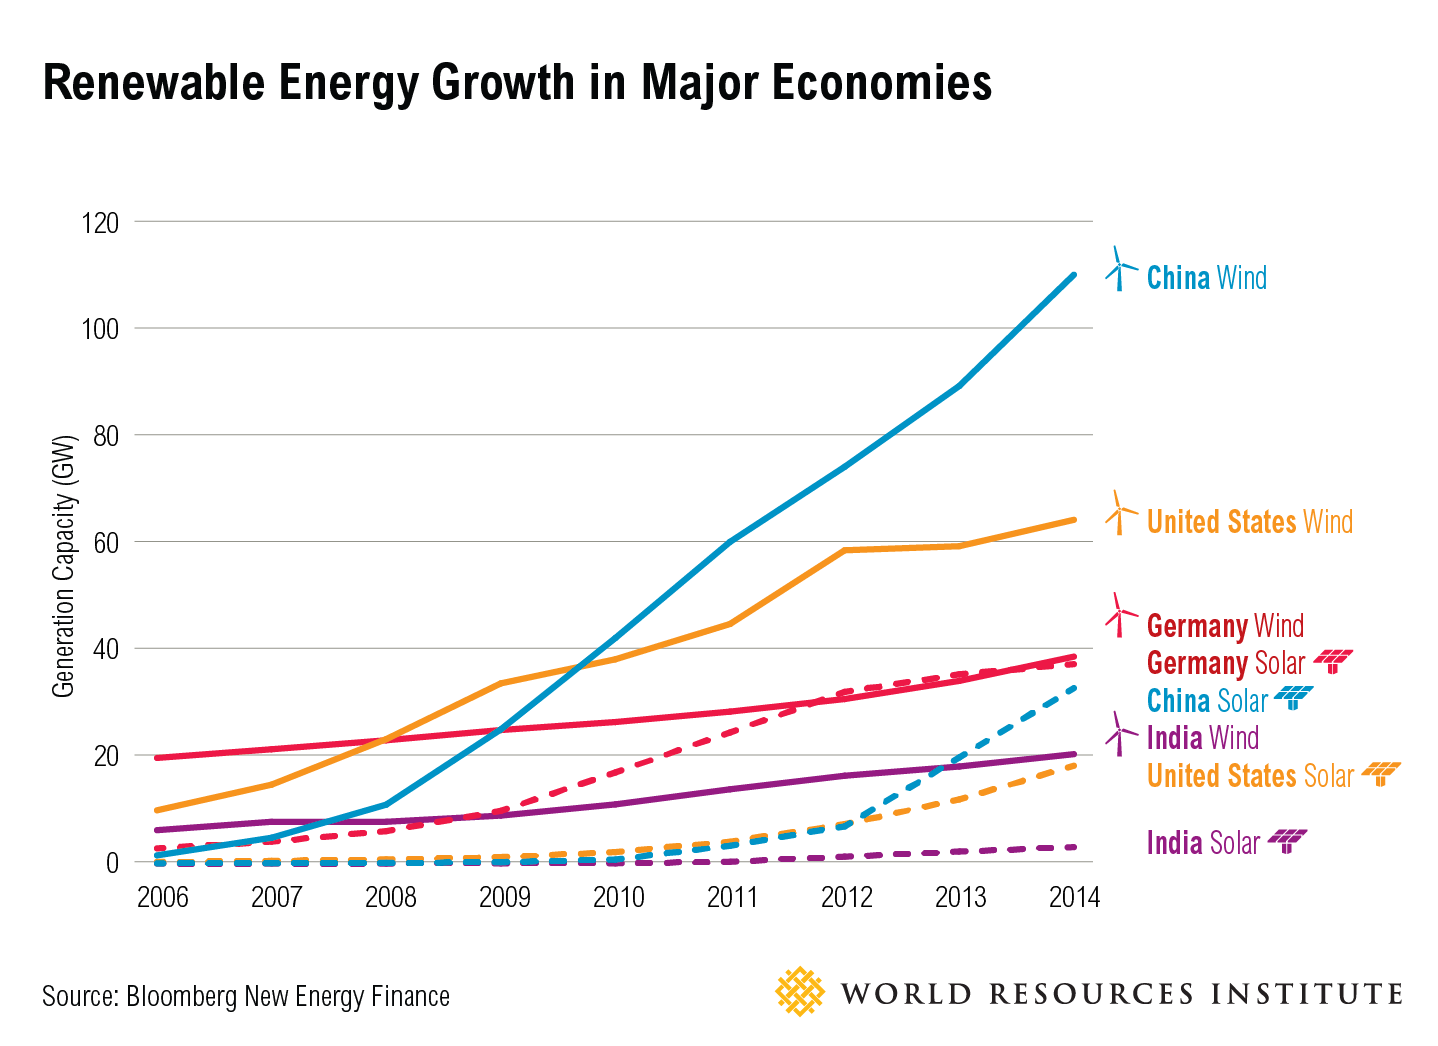 Renewable energy growth in major economies